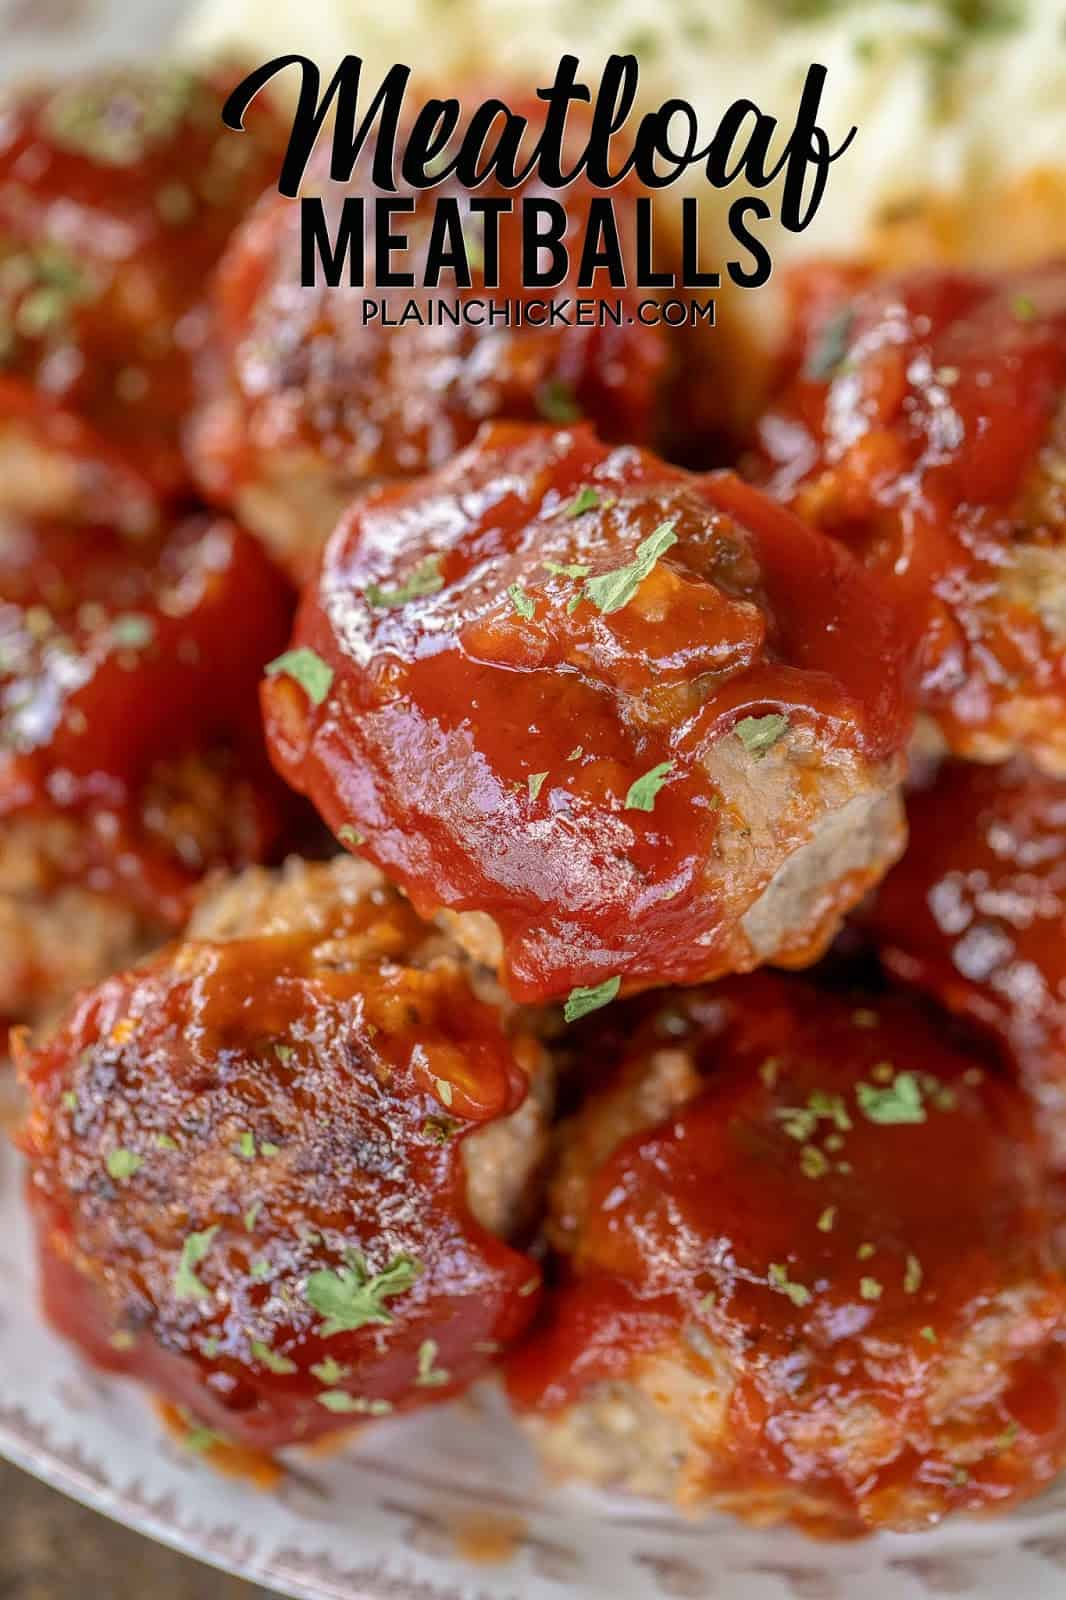 Meatloaf Meatballs - super delicious! Great at a meal or a party appetizer. Ground beef, oatmeal, milk, onion, salt, pepper, ketchup, sugar, vinegar, hot sauce and Worcestershire. I always double the recipe! The whole family LOVES these yummy meatballs! #beefrecipes #meatloaf #meatballs